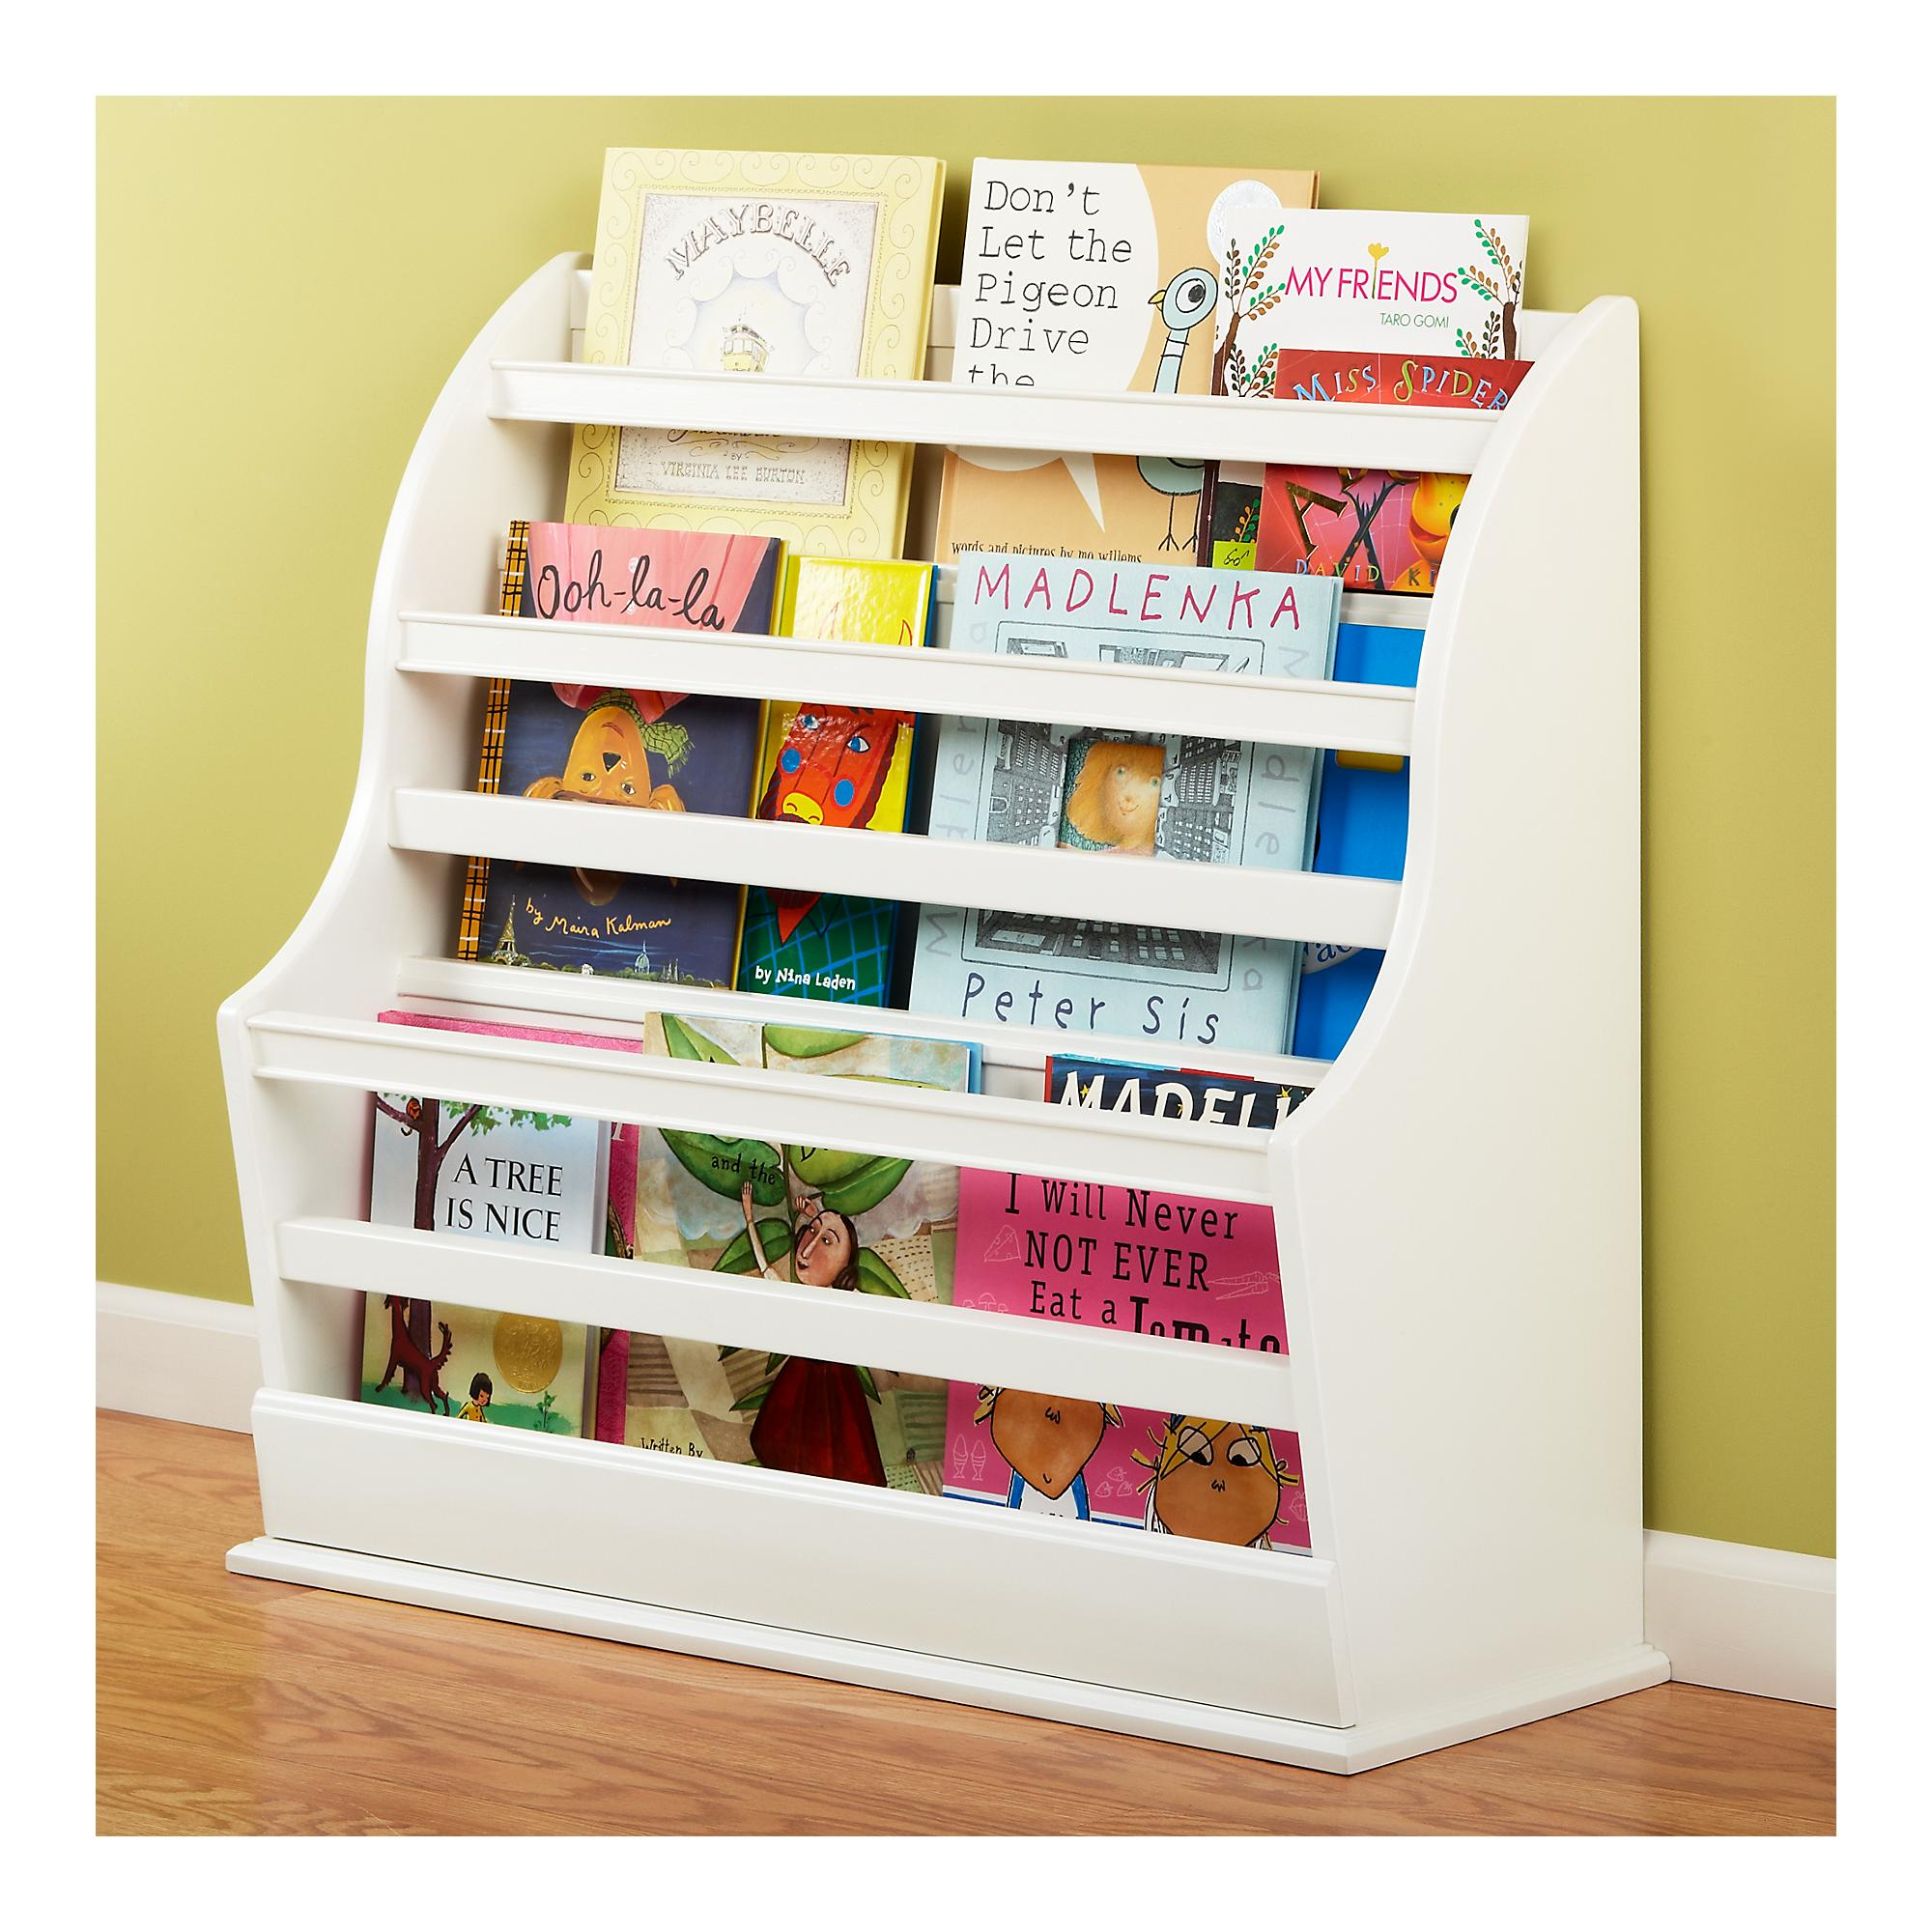 Life is bella front facing bookcase for Book shelf for kids room